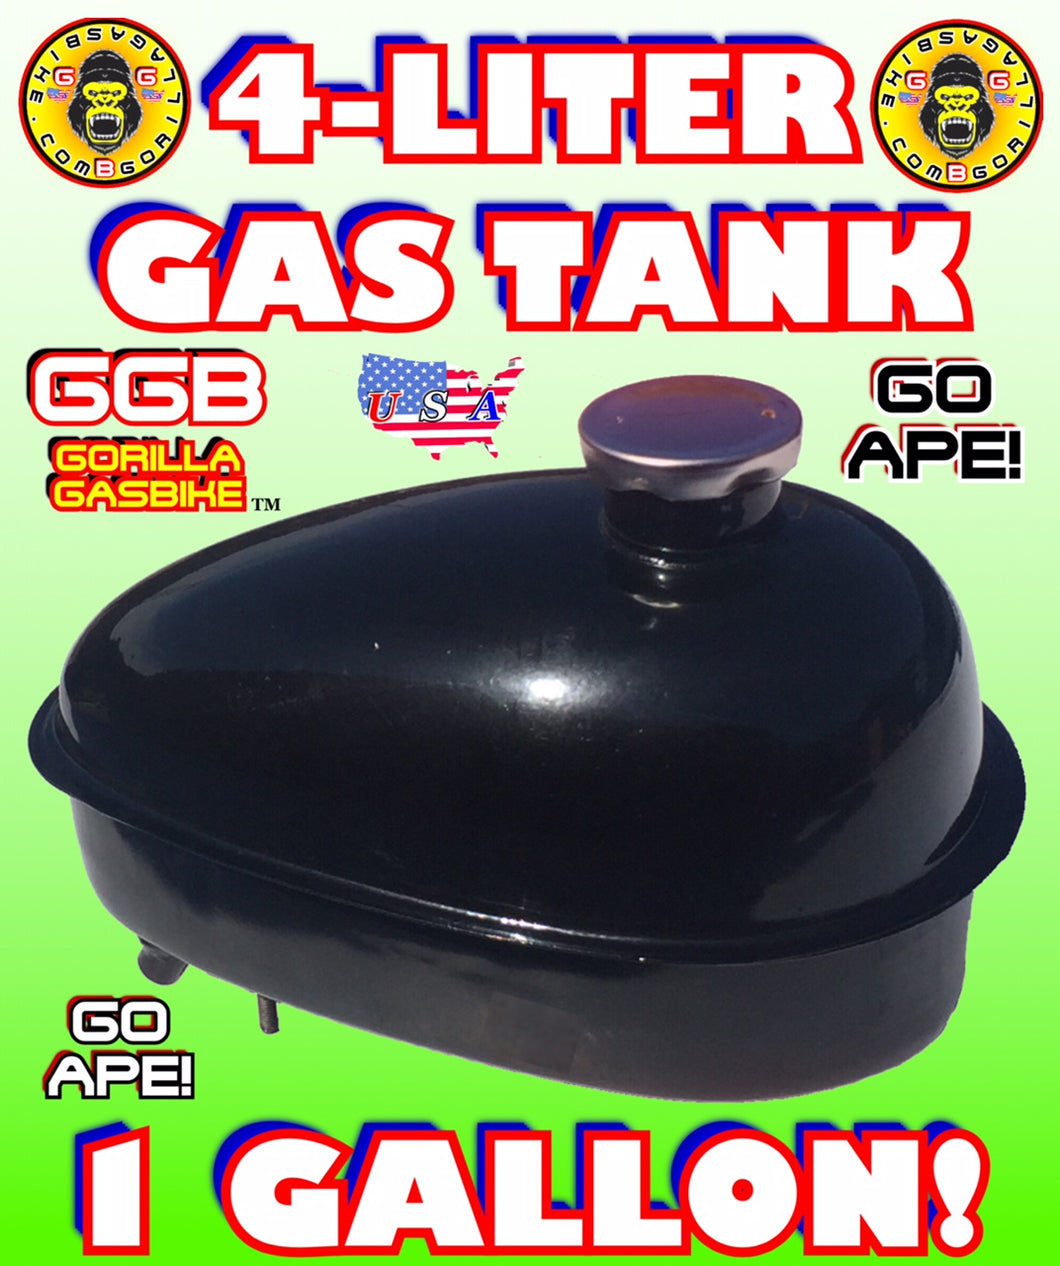 GAS TANK BLACK 4 LITER FOR 2-STROKE 4-STROKE 48CC/66CC/80CC MOTORIZED BIKE